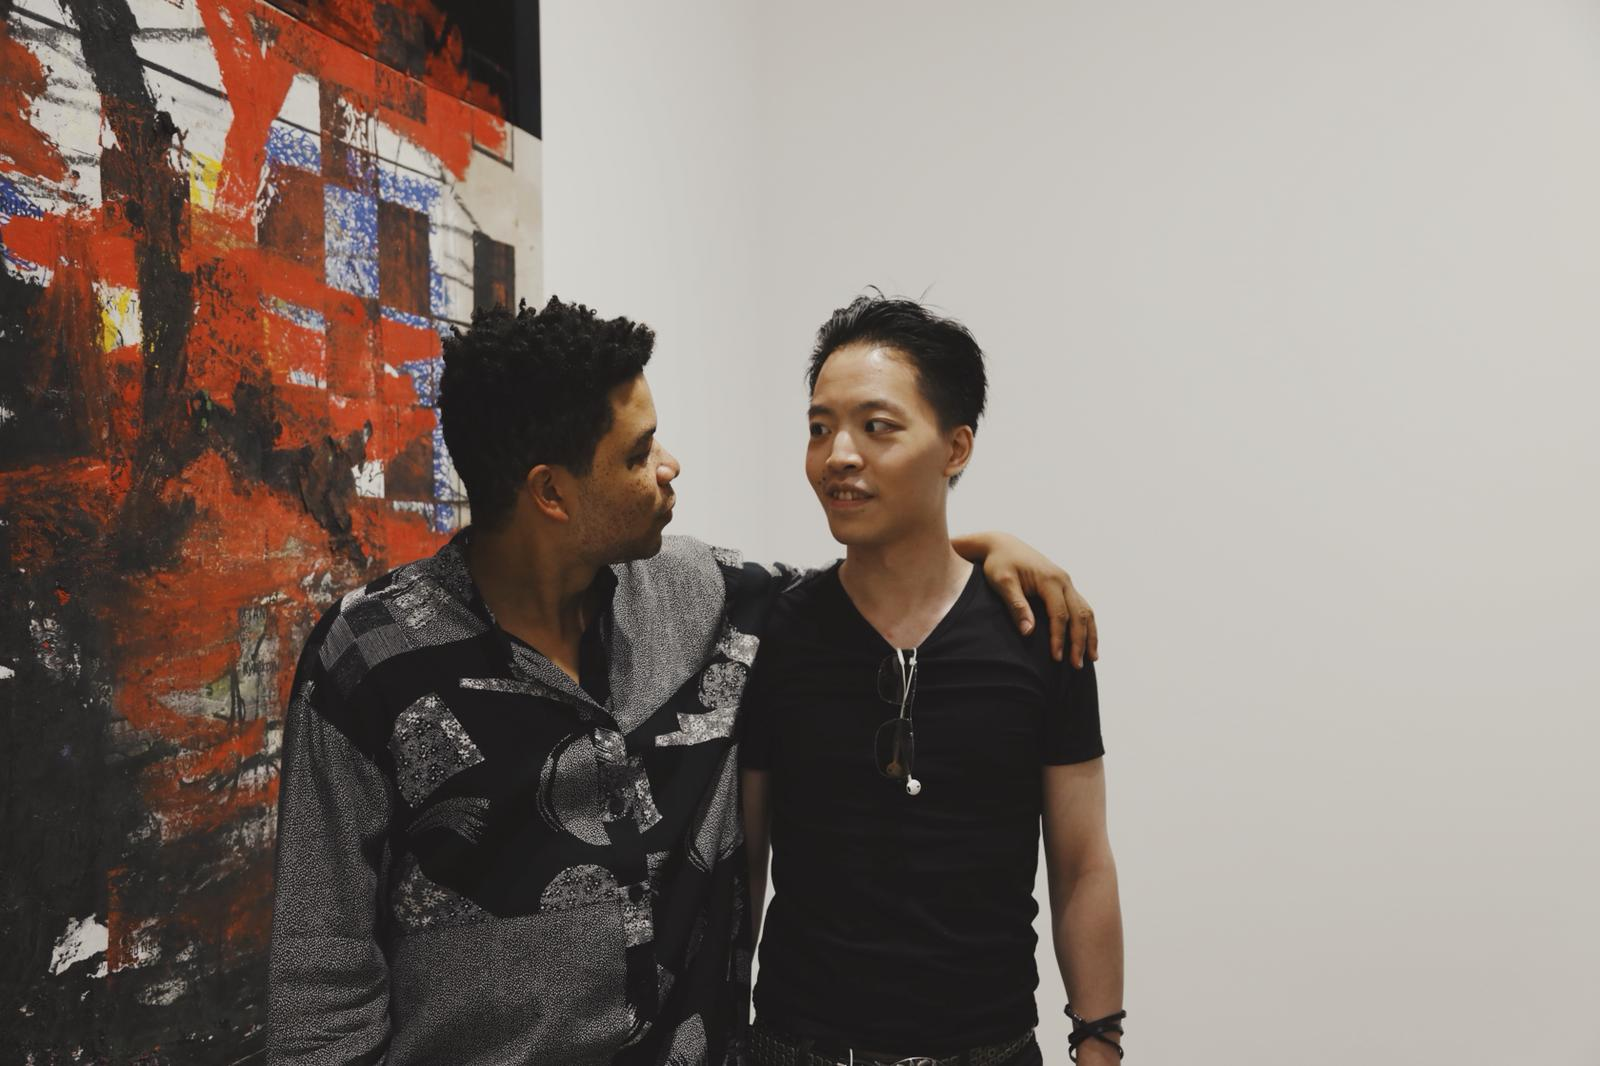 Michael Andrew Law Cheuk Yui ( 羅卓睿 ) and Oscar Murillo ( 奧斯卡·牟利羅 )